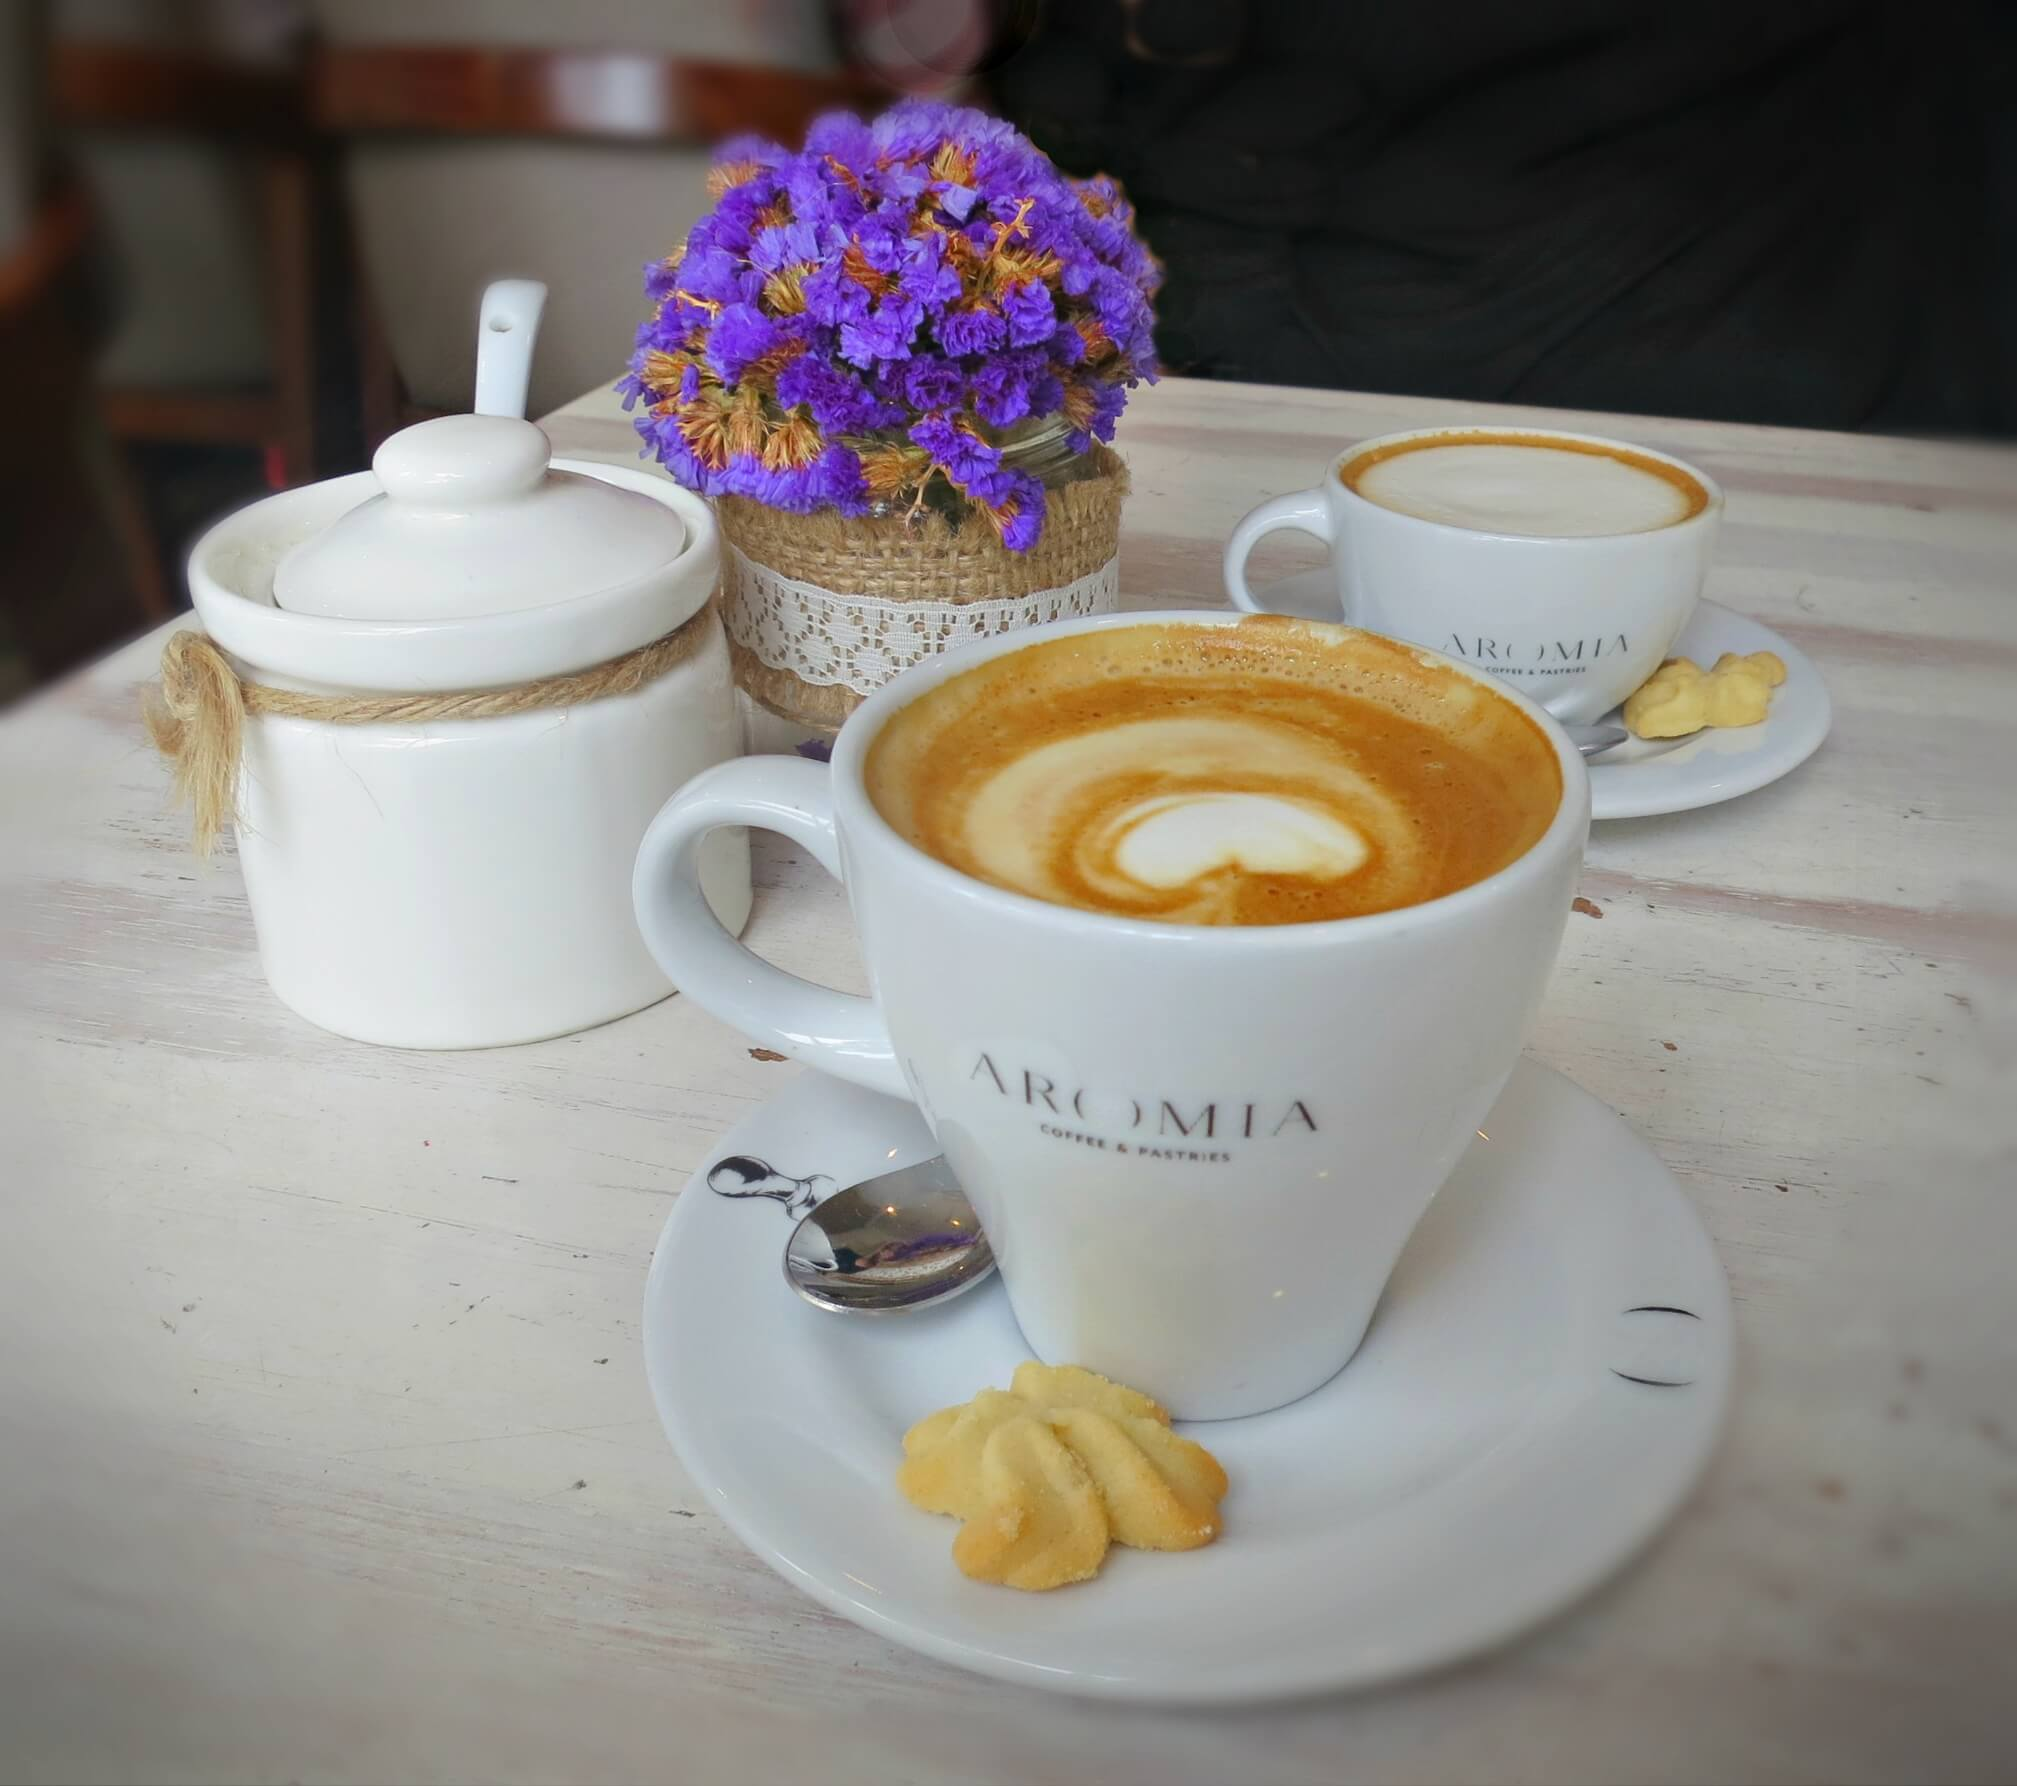 A cappuccino at Aromia in Miraflores, one of the best third wave coffee shops in Lima, Peru.